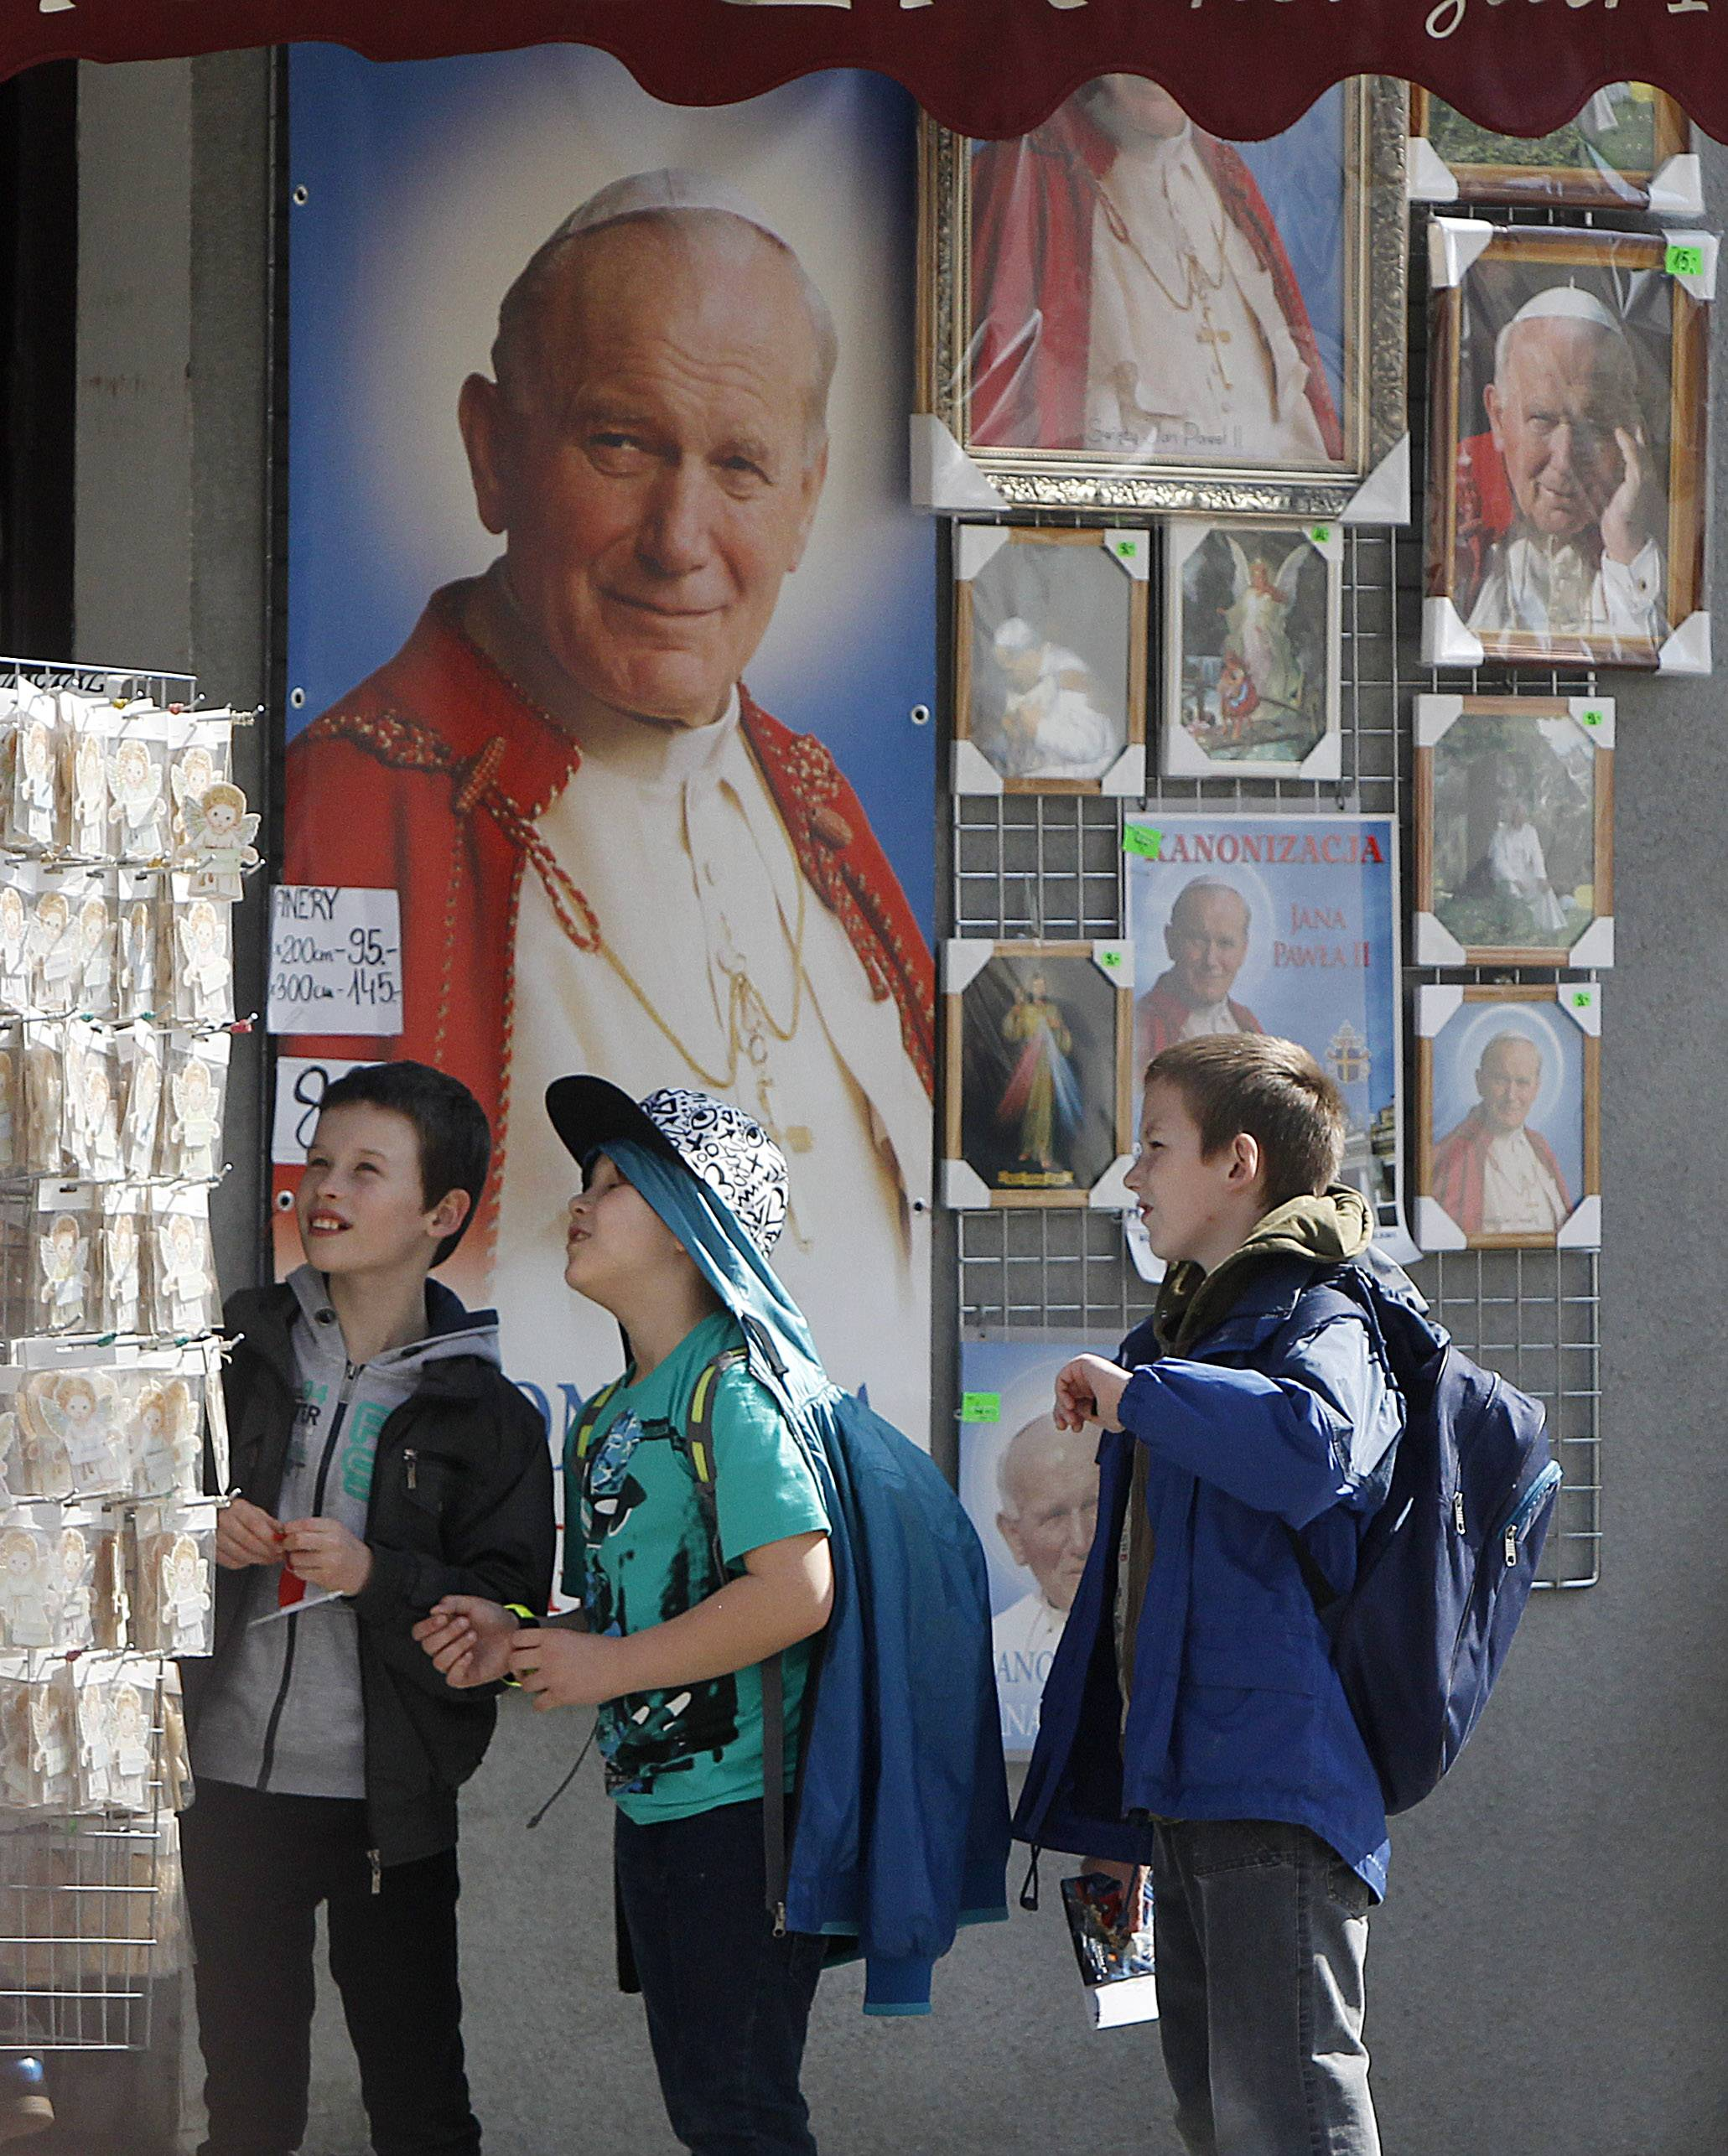 School children are looking at souvenirs of Pope John Paul II in his hometown of Wadowice, Poland on Monday, April 7, 2014. A new multimedia museum to the pope will open this week at his Wadowice birth house just weeks before John Paul II is to be made a saint during a Vatican ceremony, led by Pope Francis on April 27.